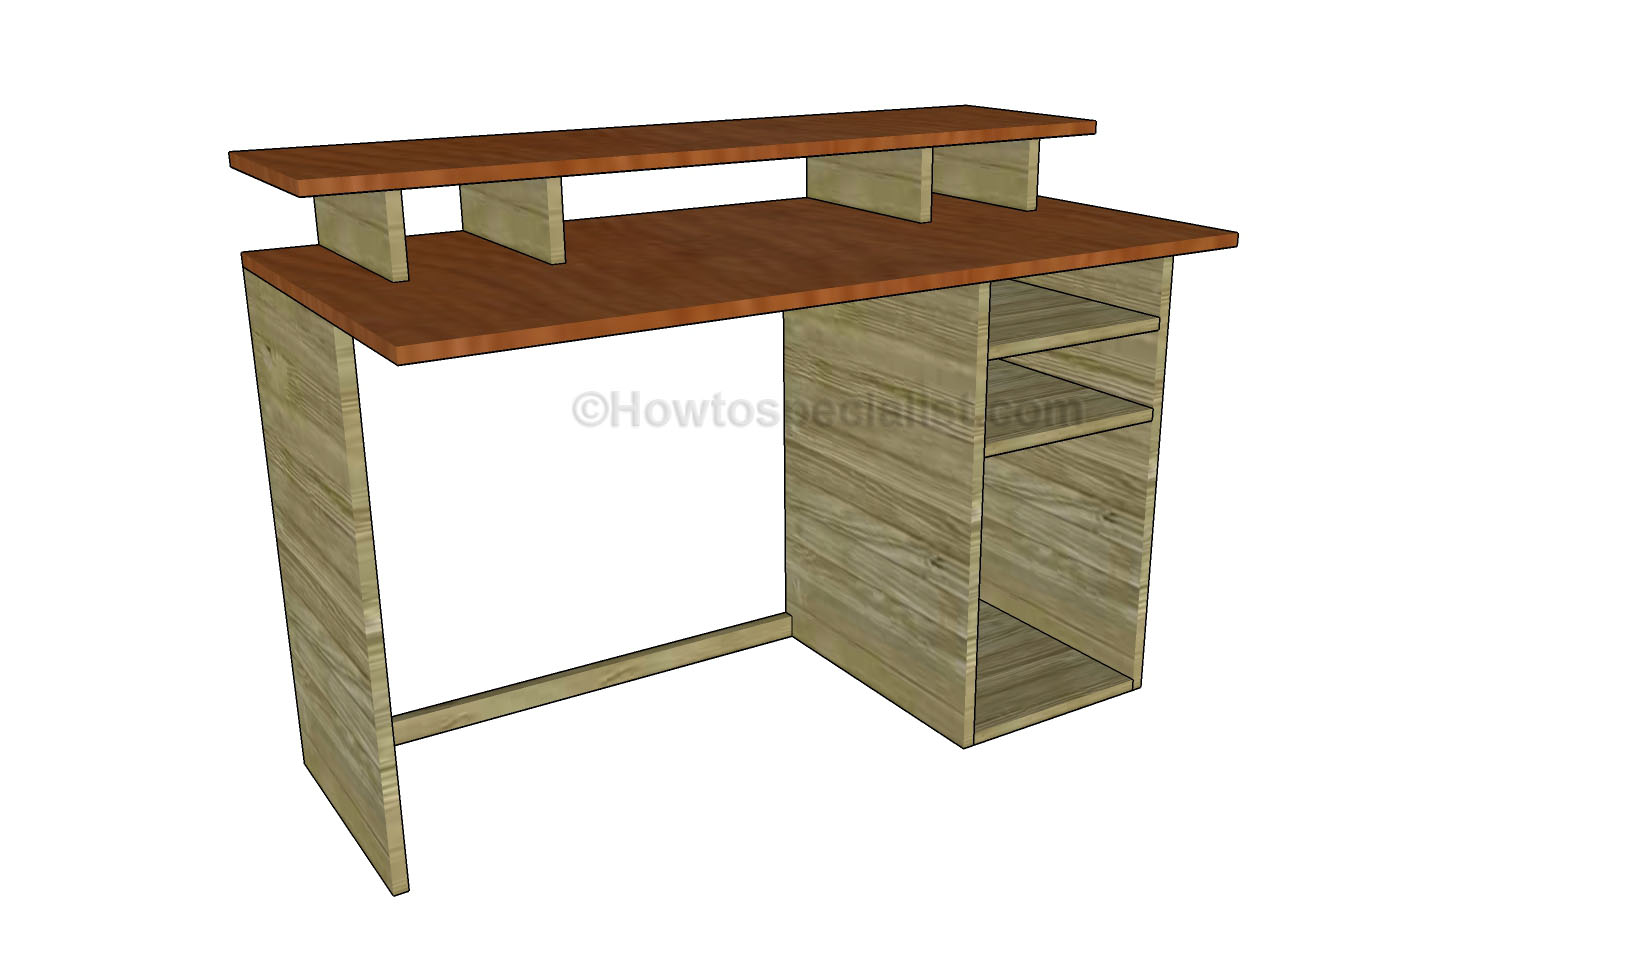 woodworking plans computer desk free ~ free woodworking plans